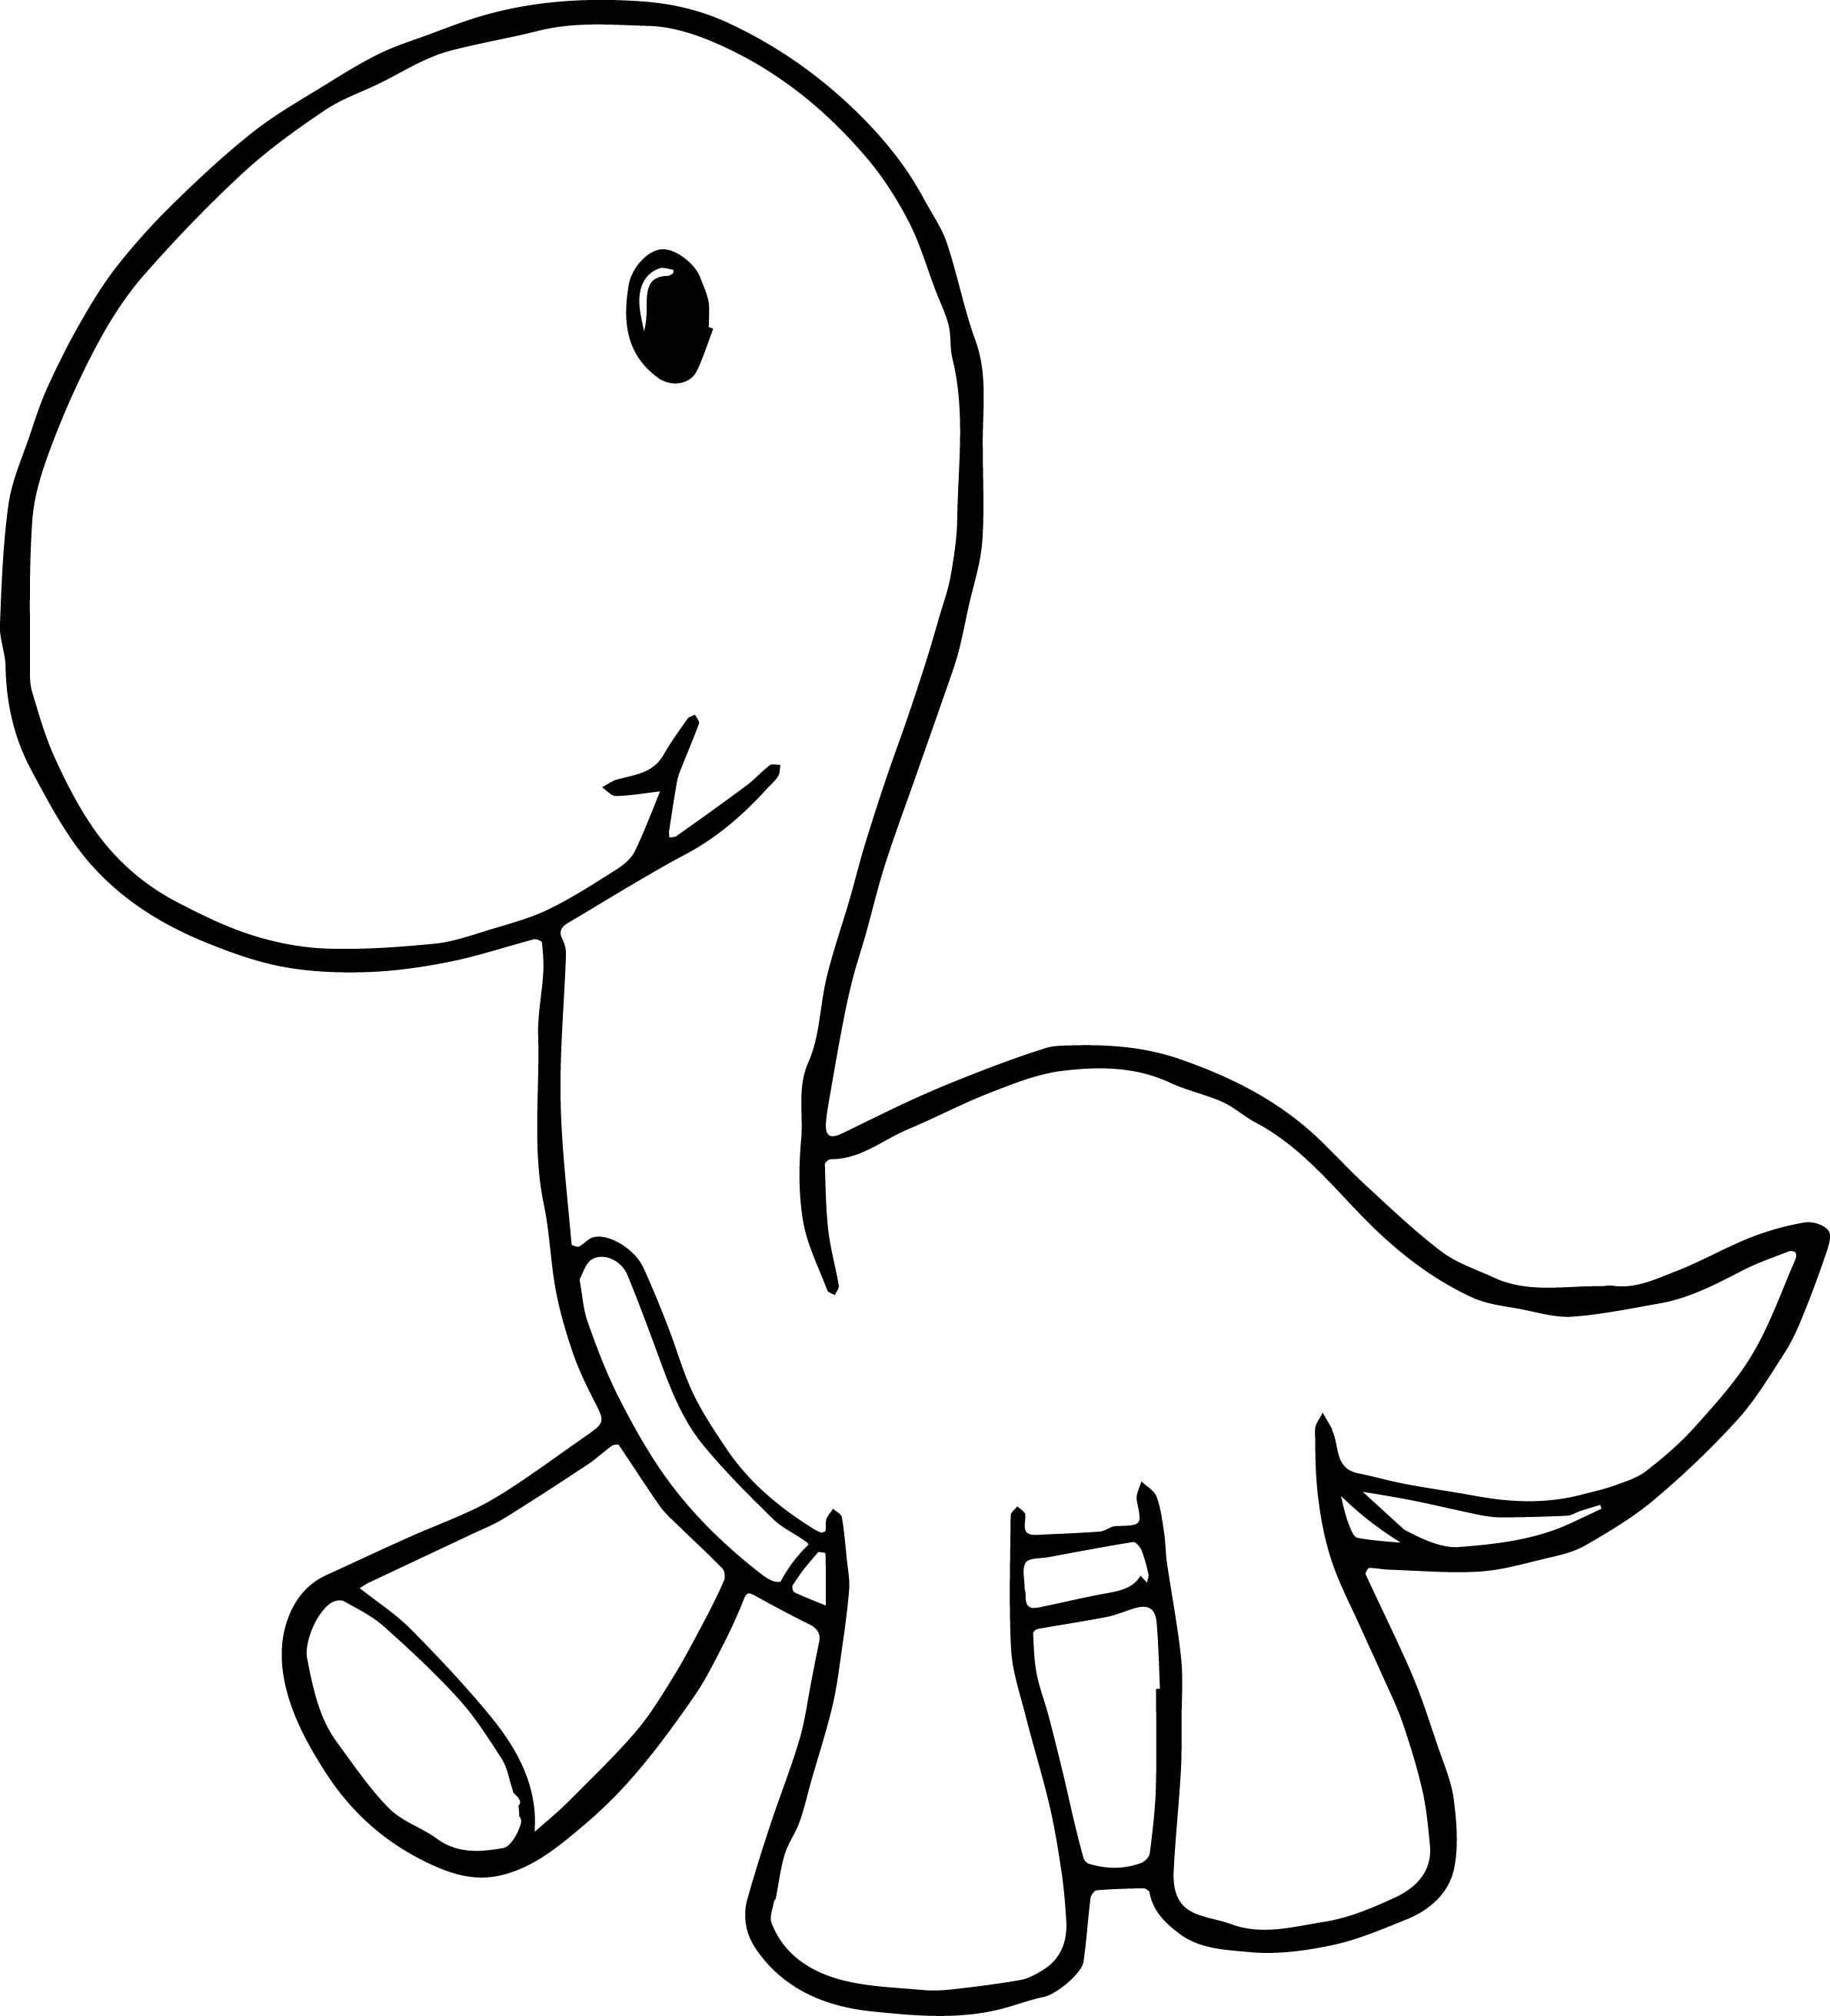 Baby Dinosaur Cartoon Coloring Page Wecoloringpage